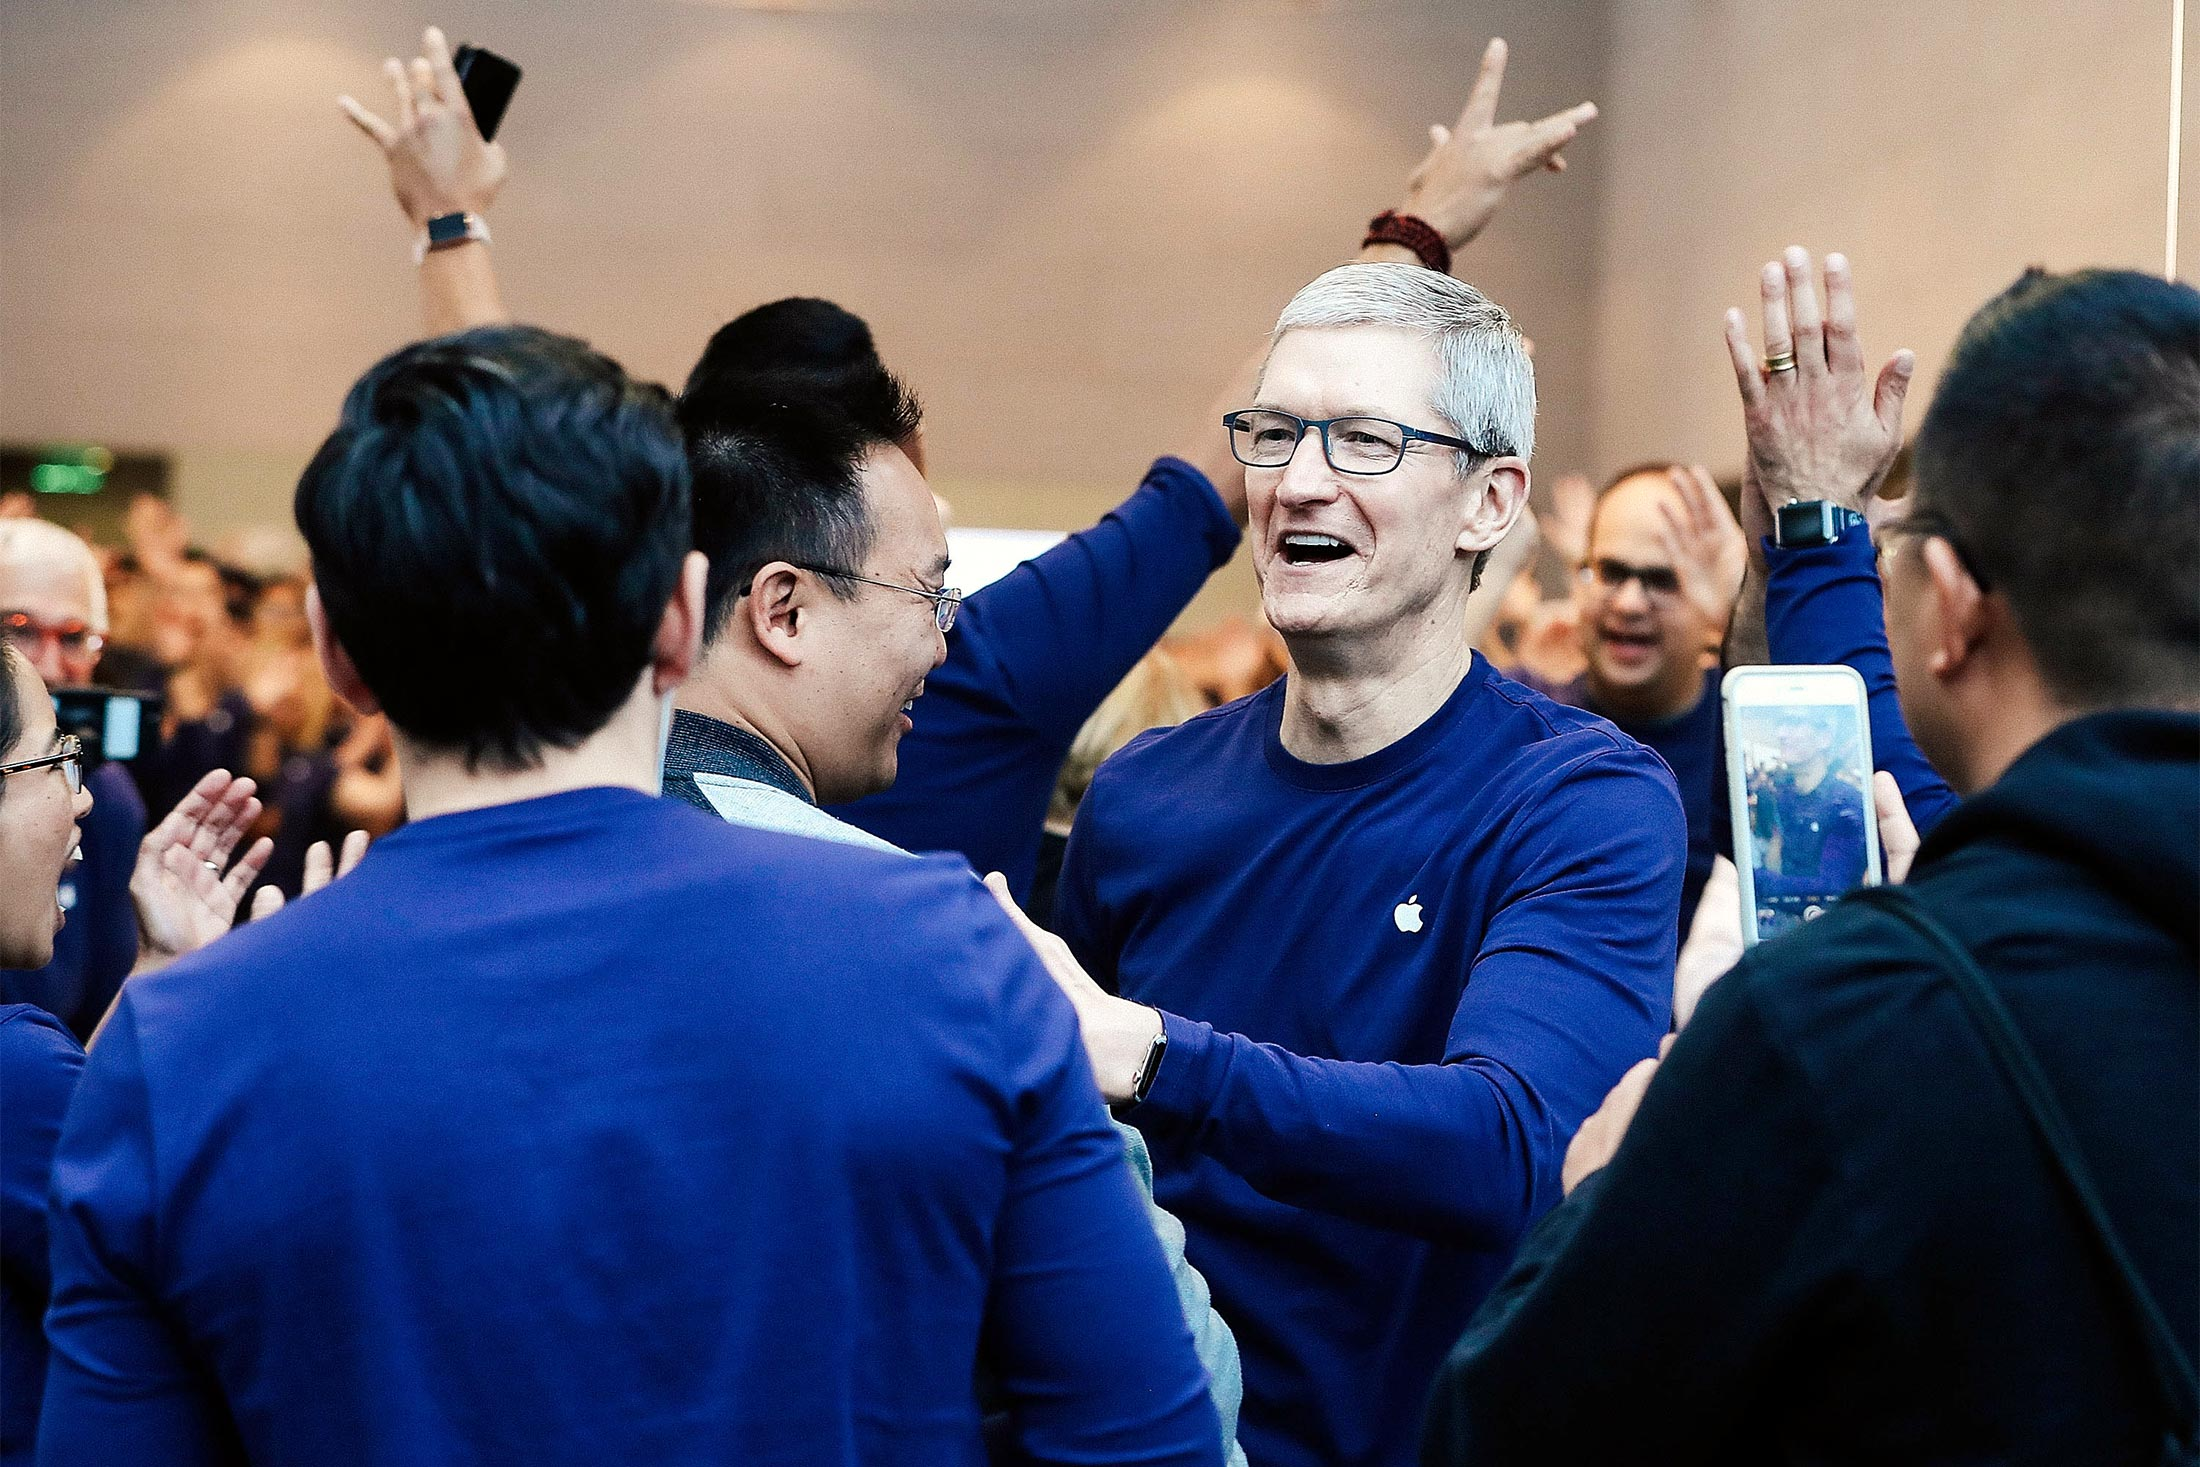 Tim Cook wears a long-sleeved Apple T-shirt as he greets customers for the iPhone X release at an Apple Store.